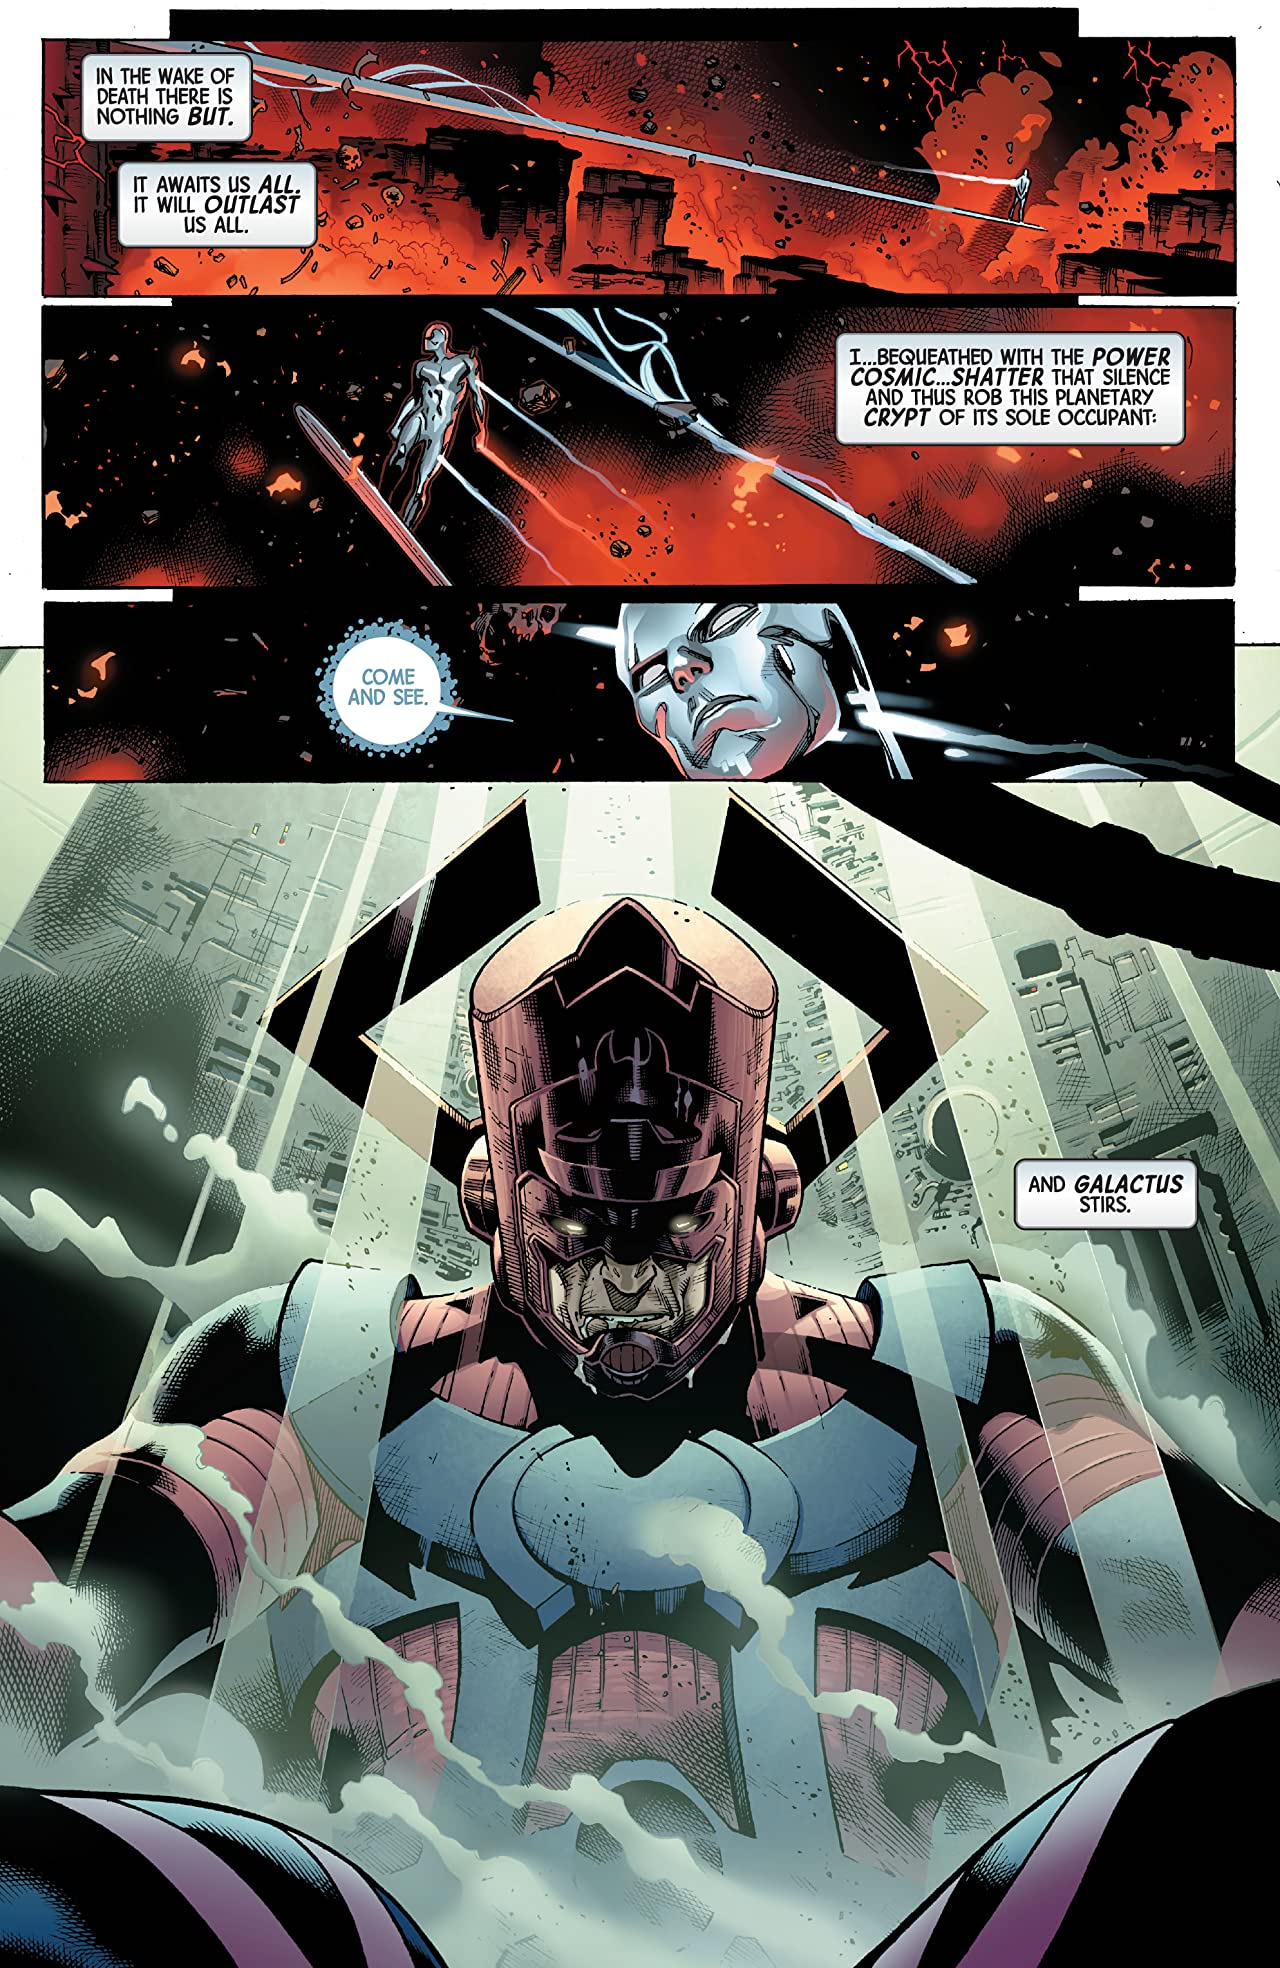 The Mighty Thor By Matt Fraction Vol. 1